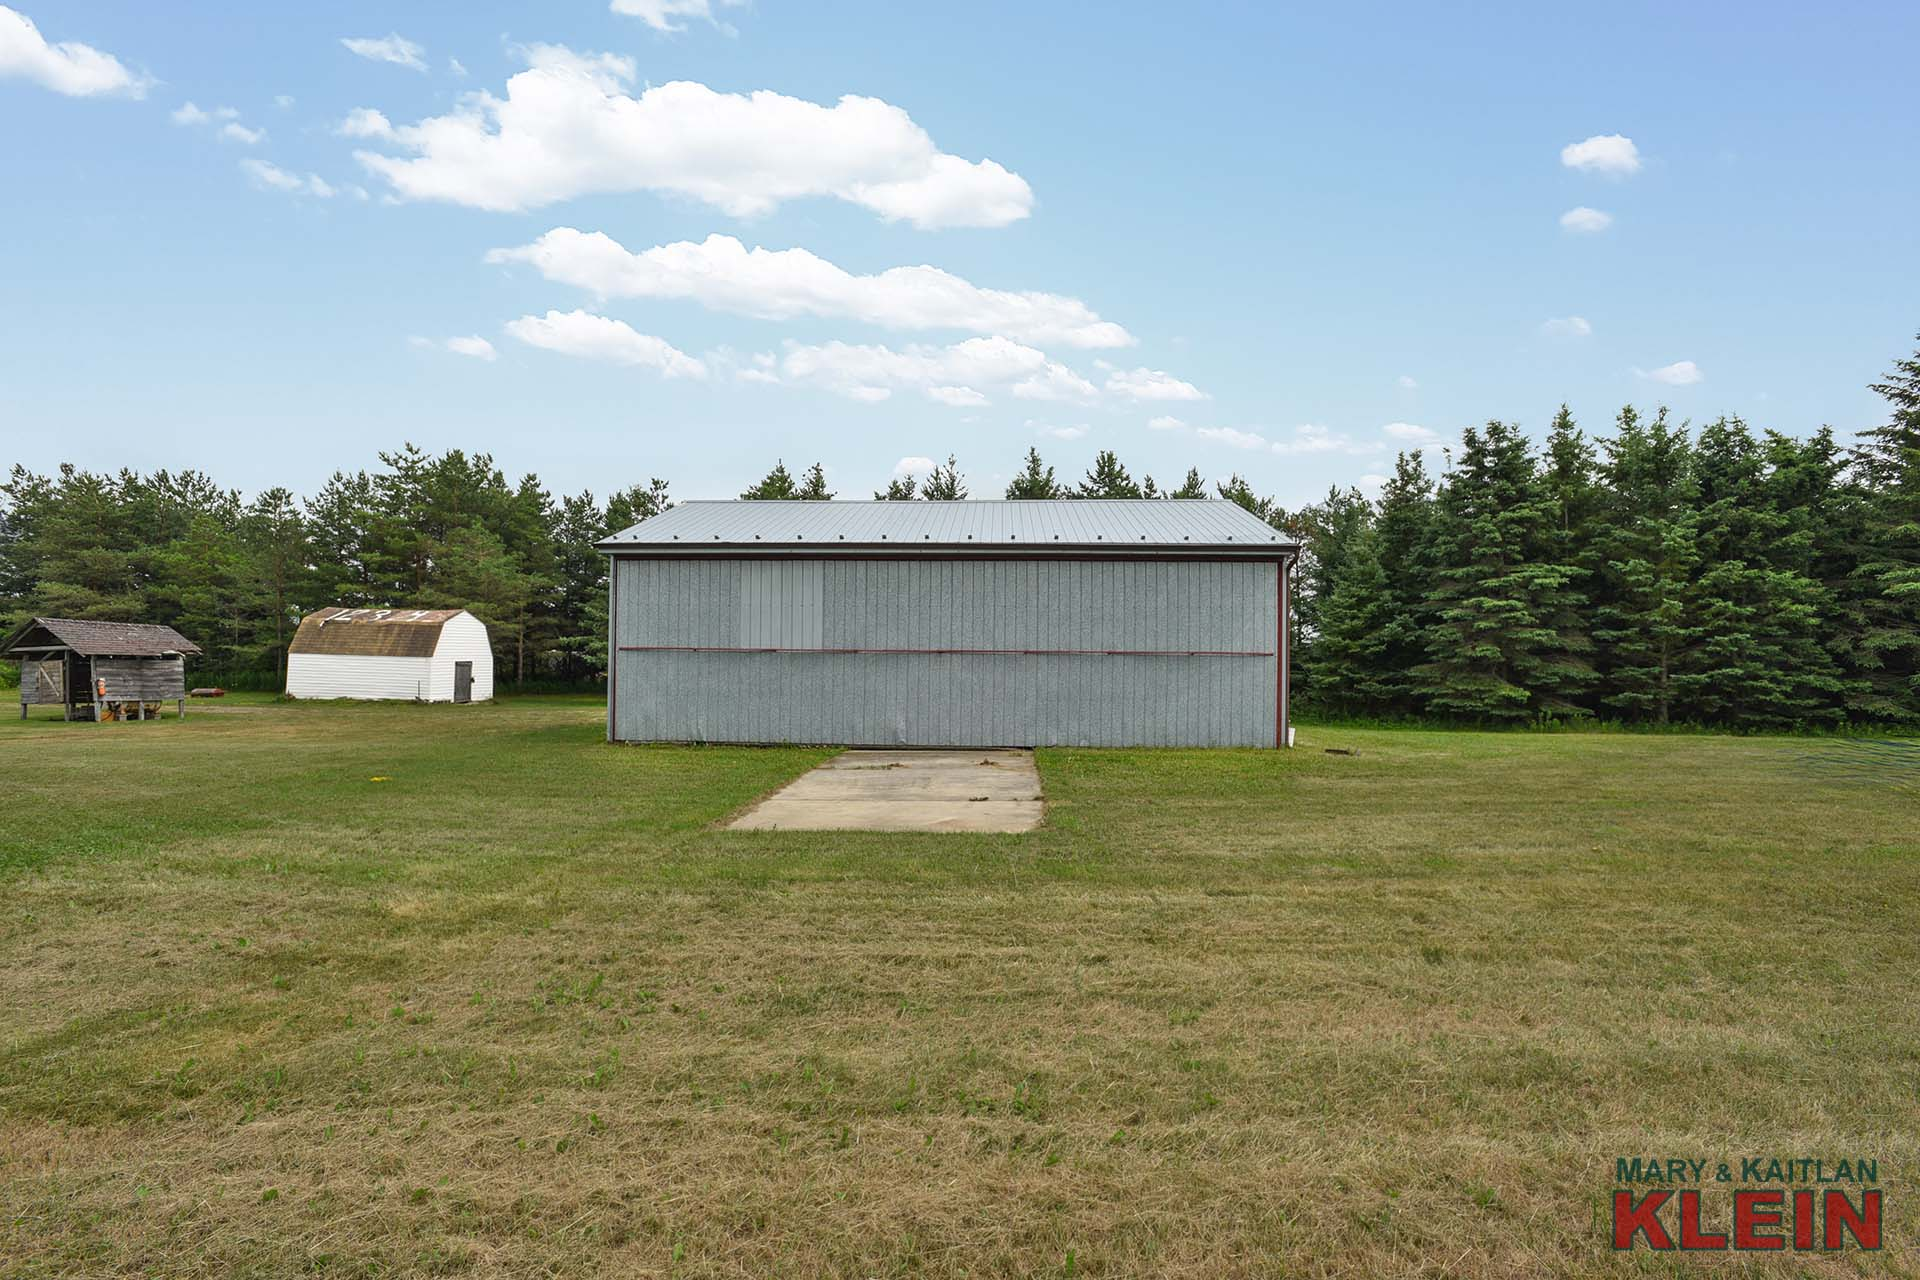 airplane hangar, pilots, grass landing strip